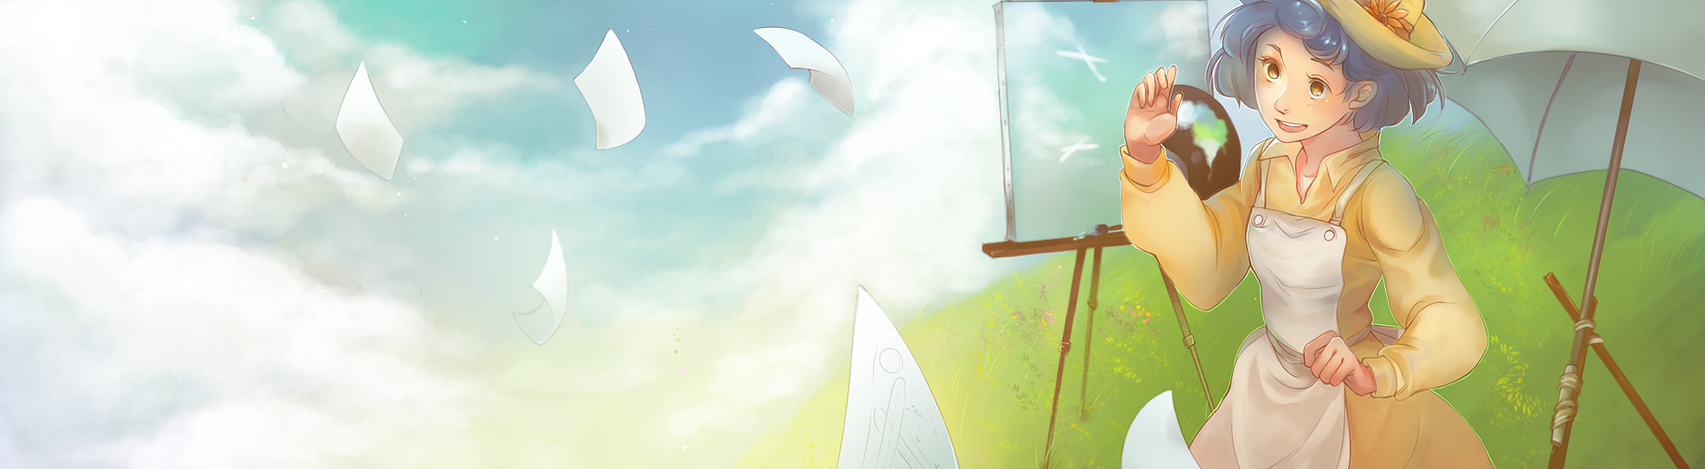 + The Wind Rises + by taka-maple